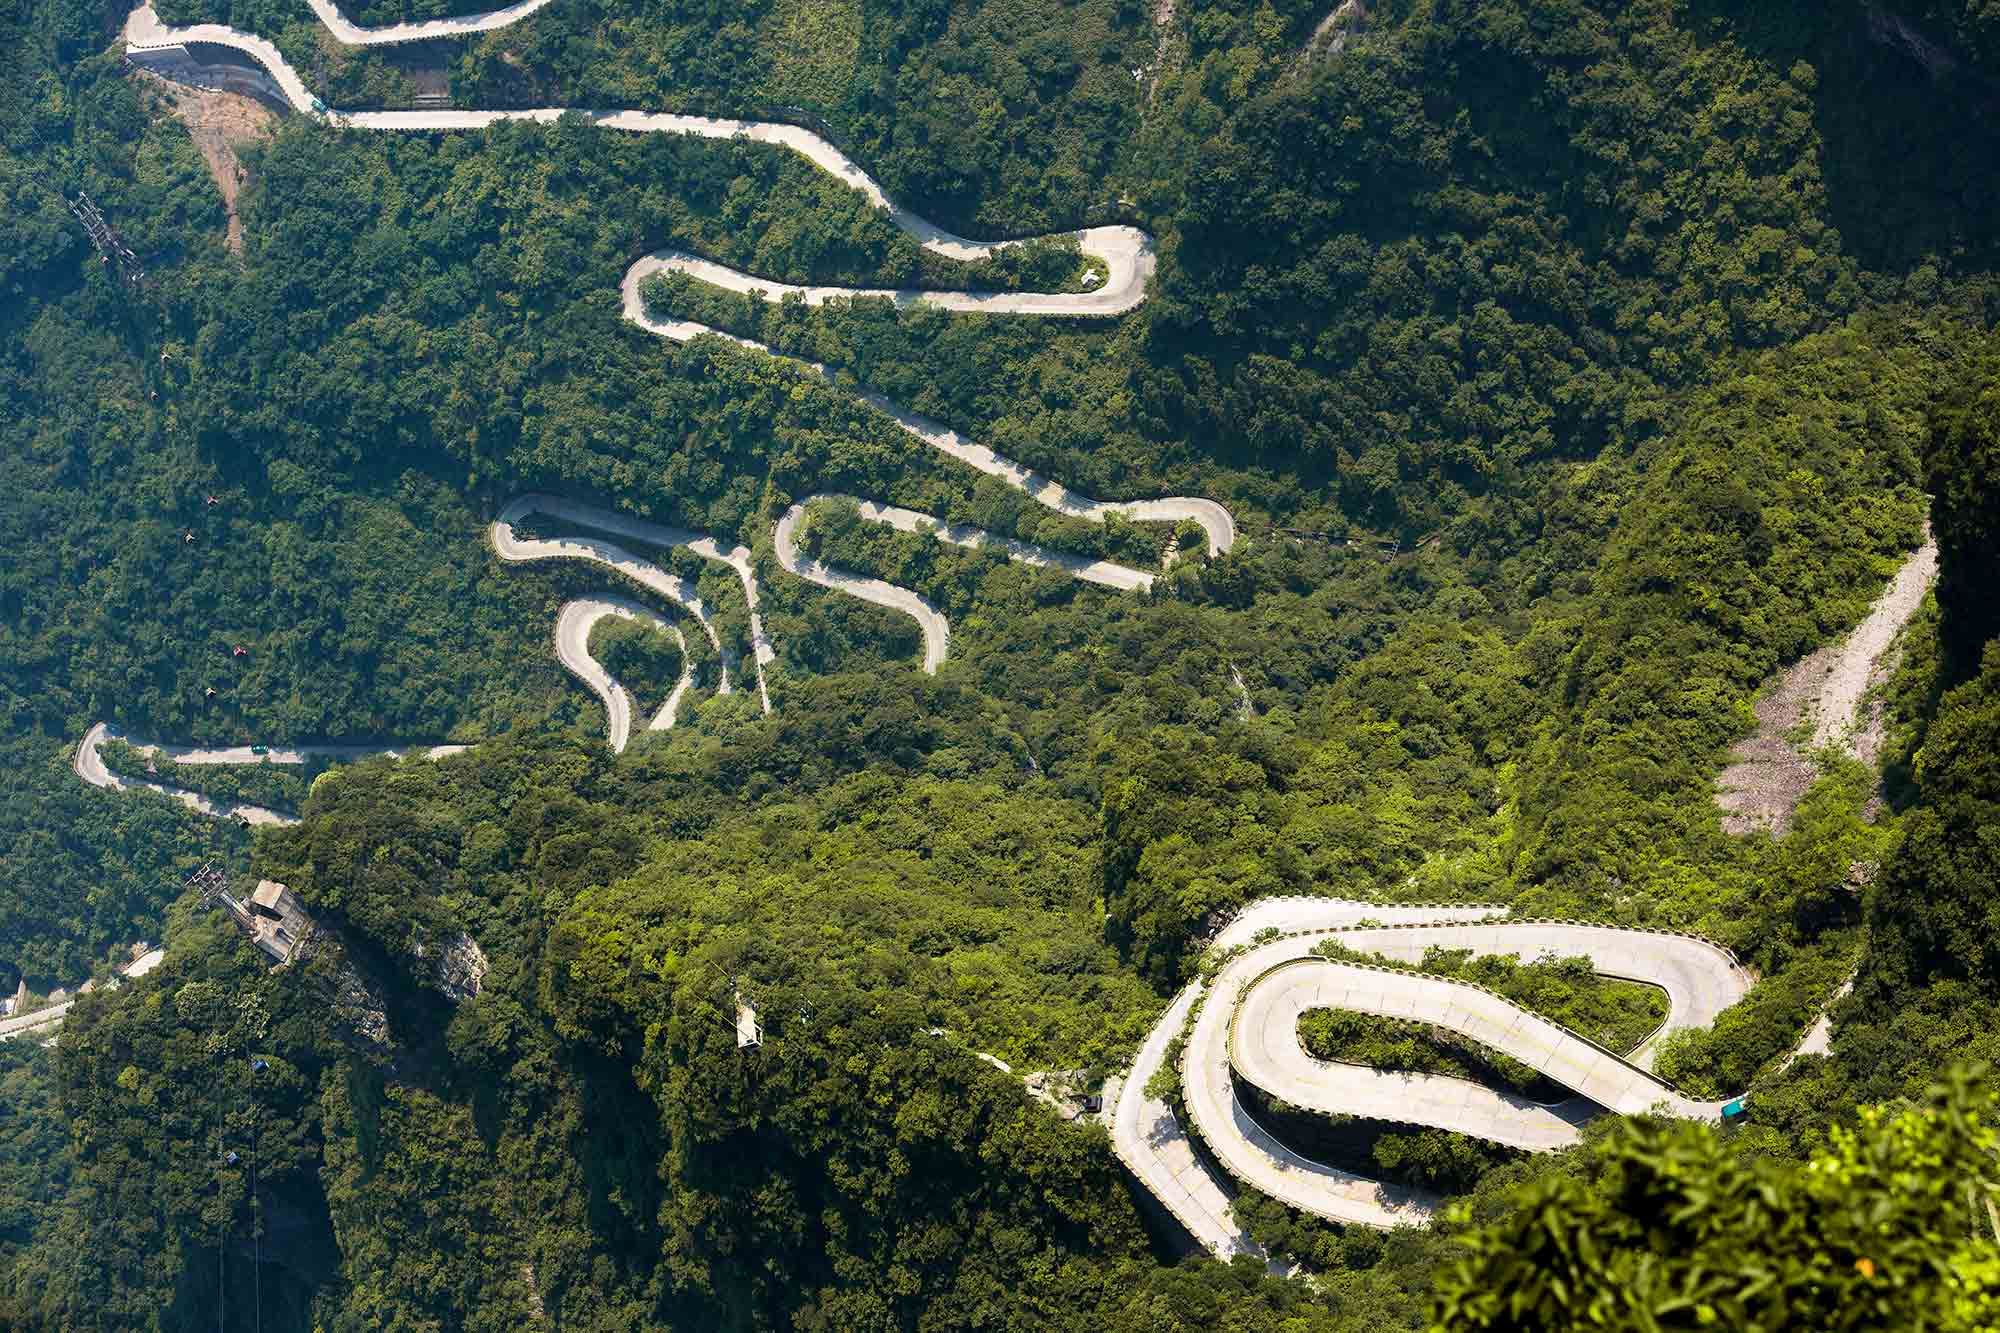 The Mountain Road in the Tianmen National Park in Zhangjiajie was one of the most impressive roads we've ever travelled on. We took the tram up and unfortunately, you're not allowed to walk along the road, so getting back down we took the bus. © ULLI MAIER & NISA MAIER